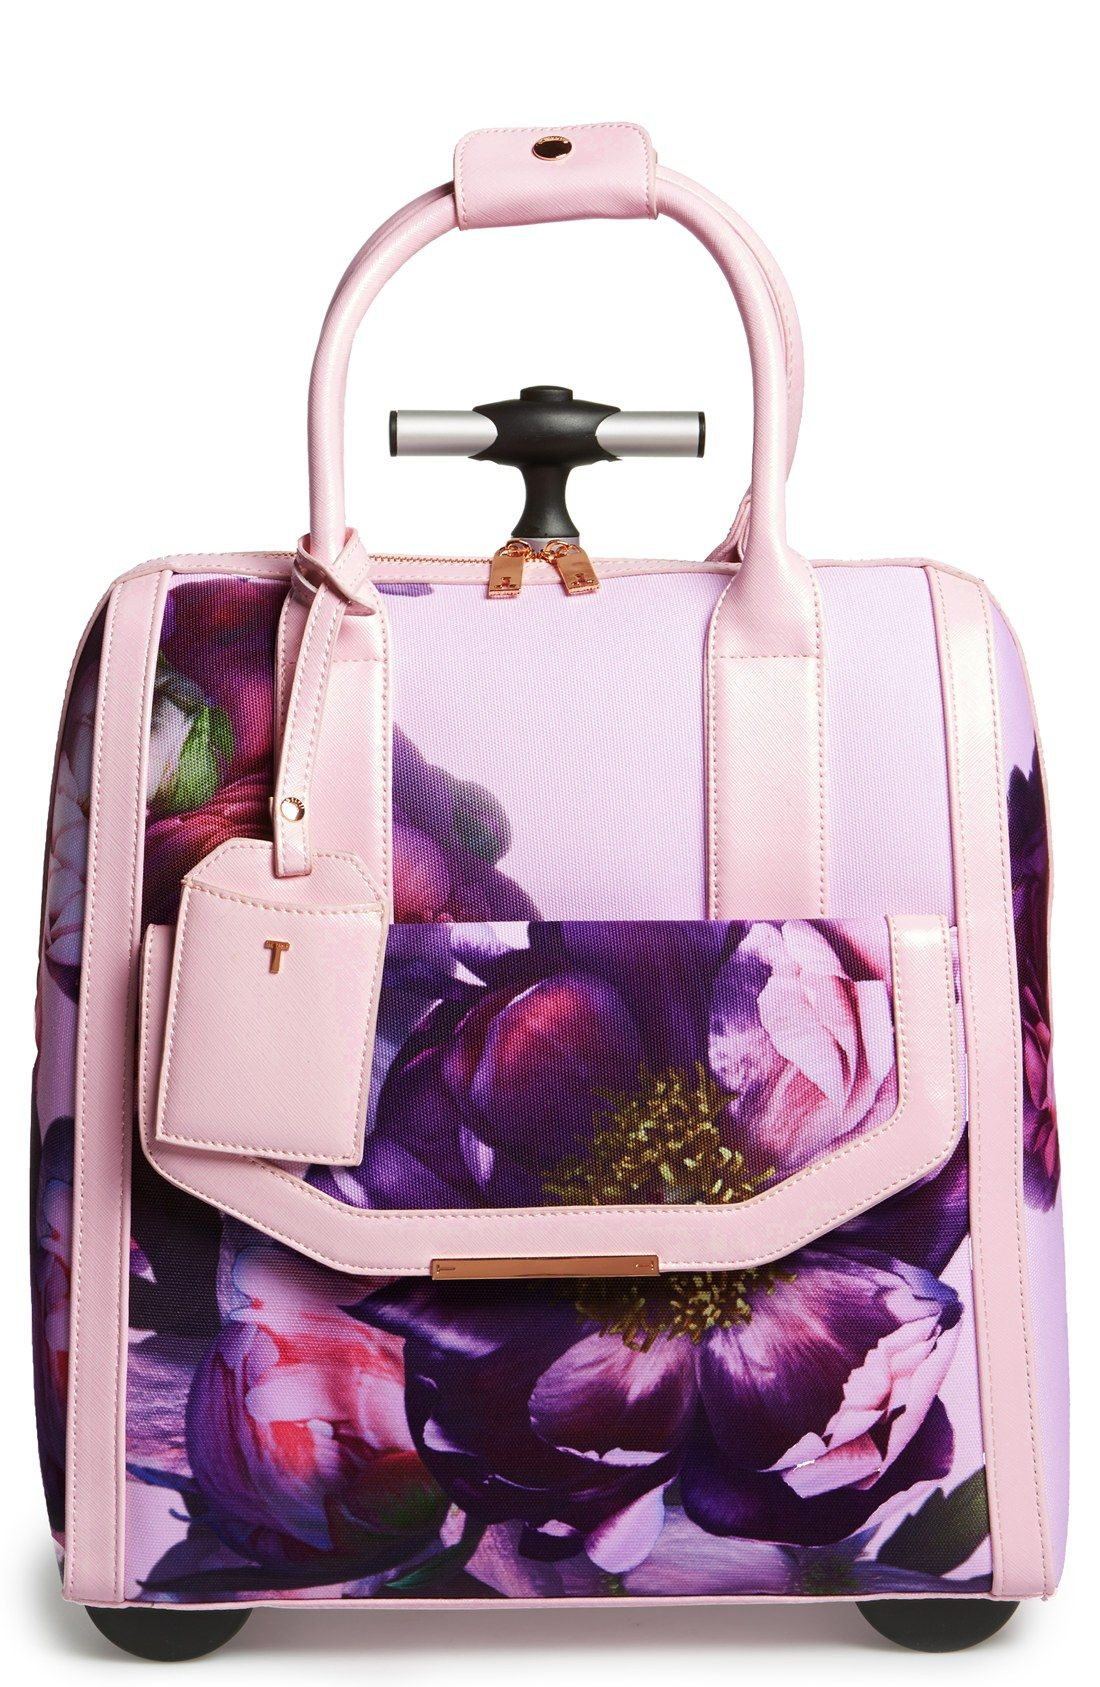 277b39411fa8 Can t wait to travel with this vibrant floral Ted Baker London carry ...